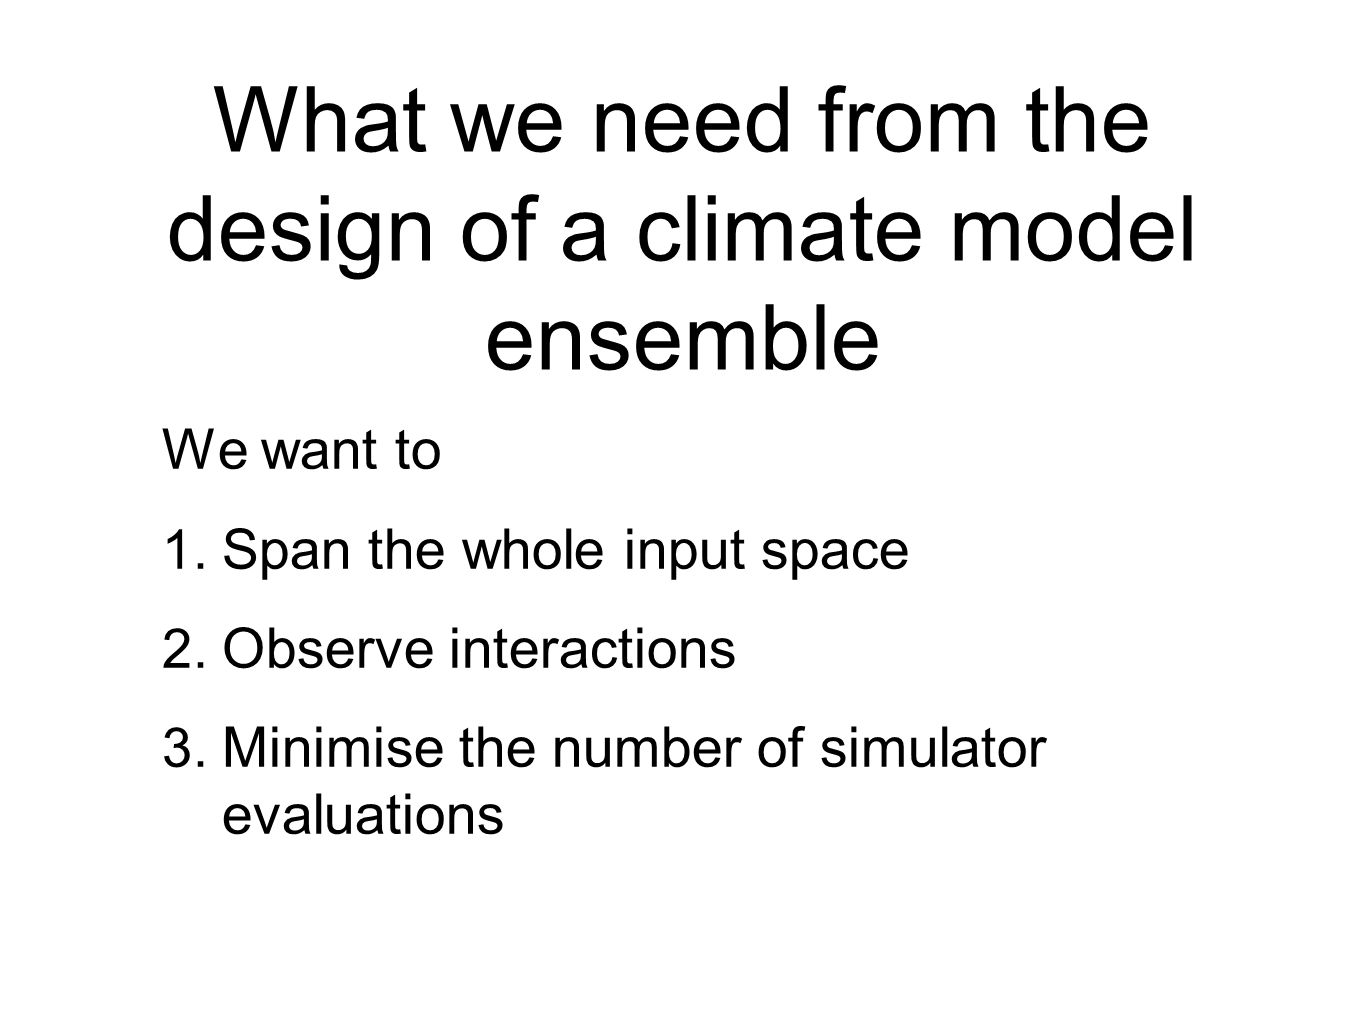 What we need from the design of a climate model ensemble